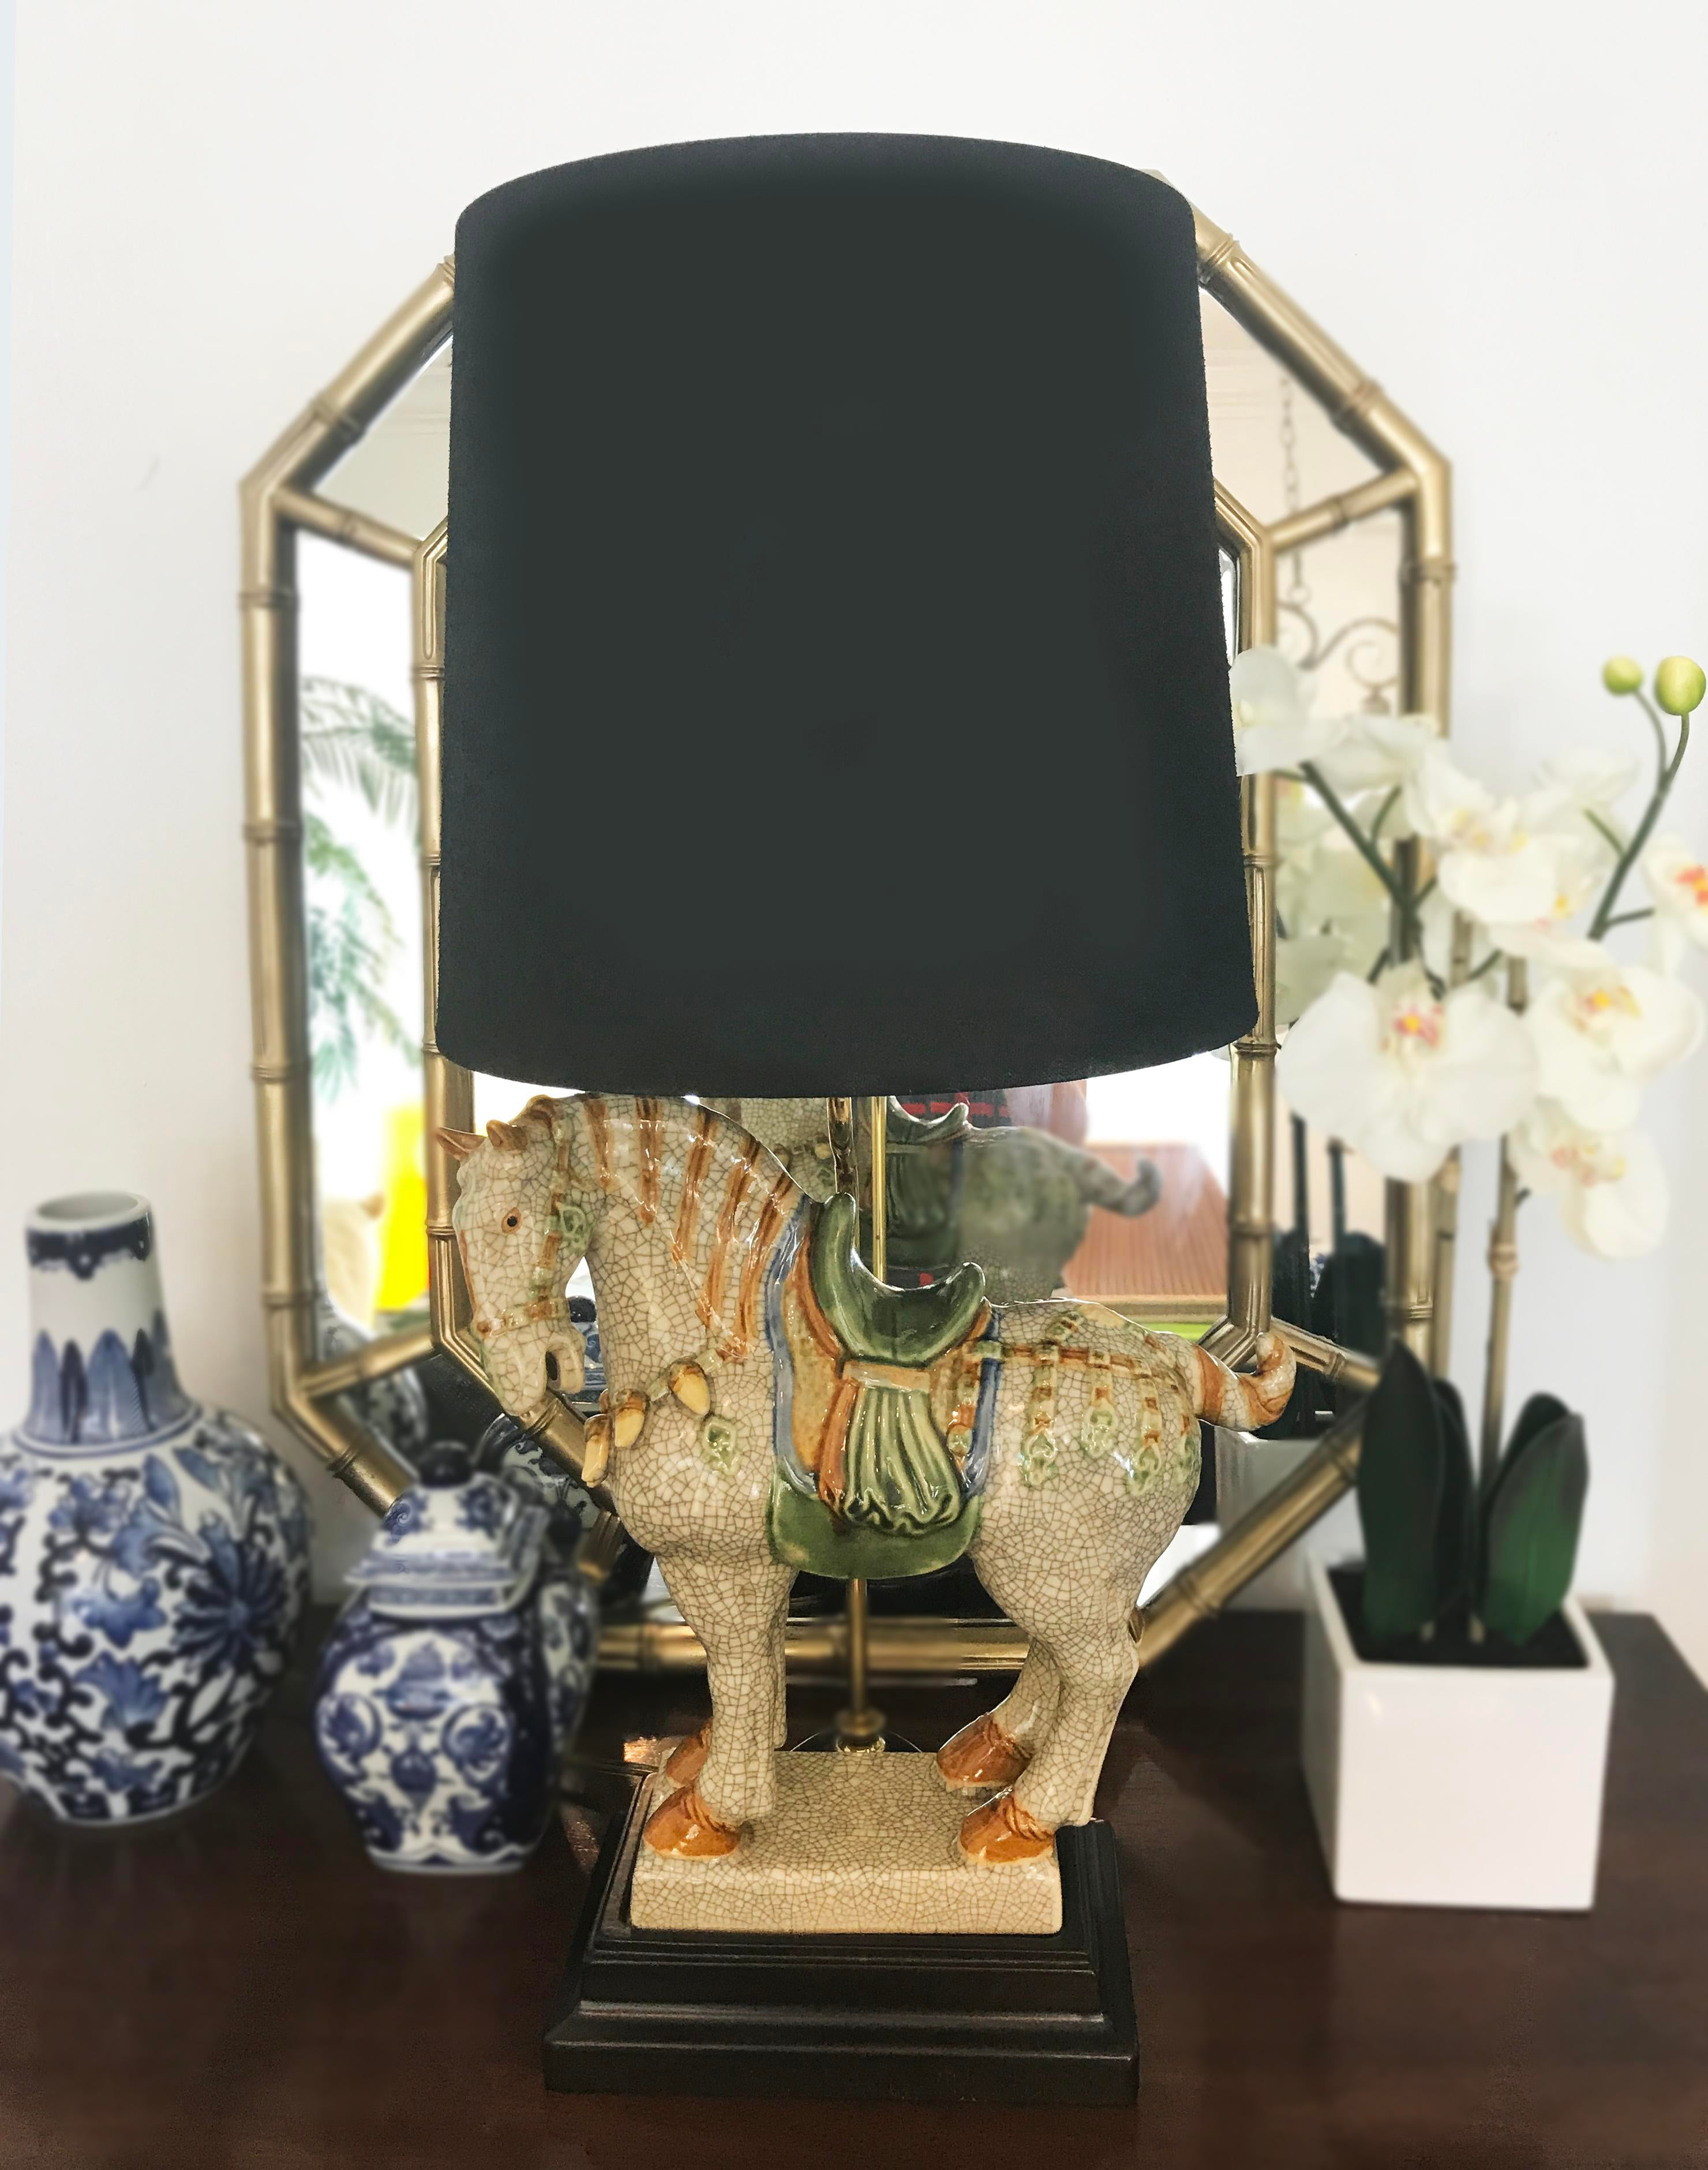 Chinoiserie Asian Style Ceramic War Horse Table L& - Image 3 of 6  sc 1 st  Chairish & Chinoiserie Asian Style Ceramic War Horse Table Lamp | Chairish azcodes.com